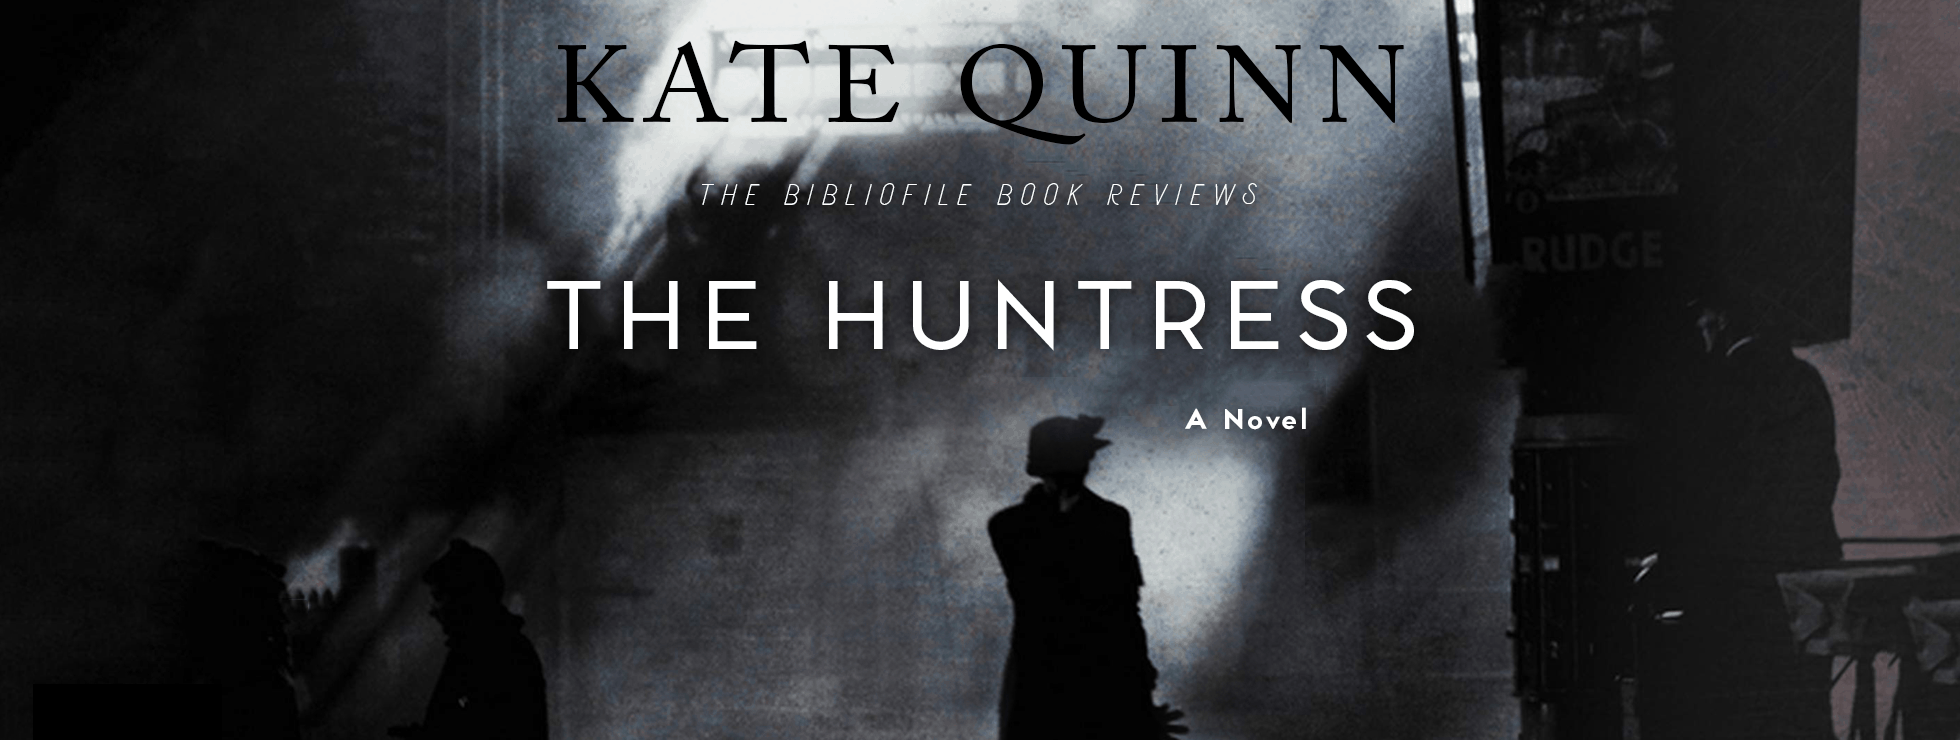 huntress review summary kate quinn